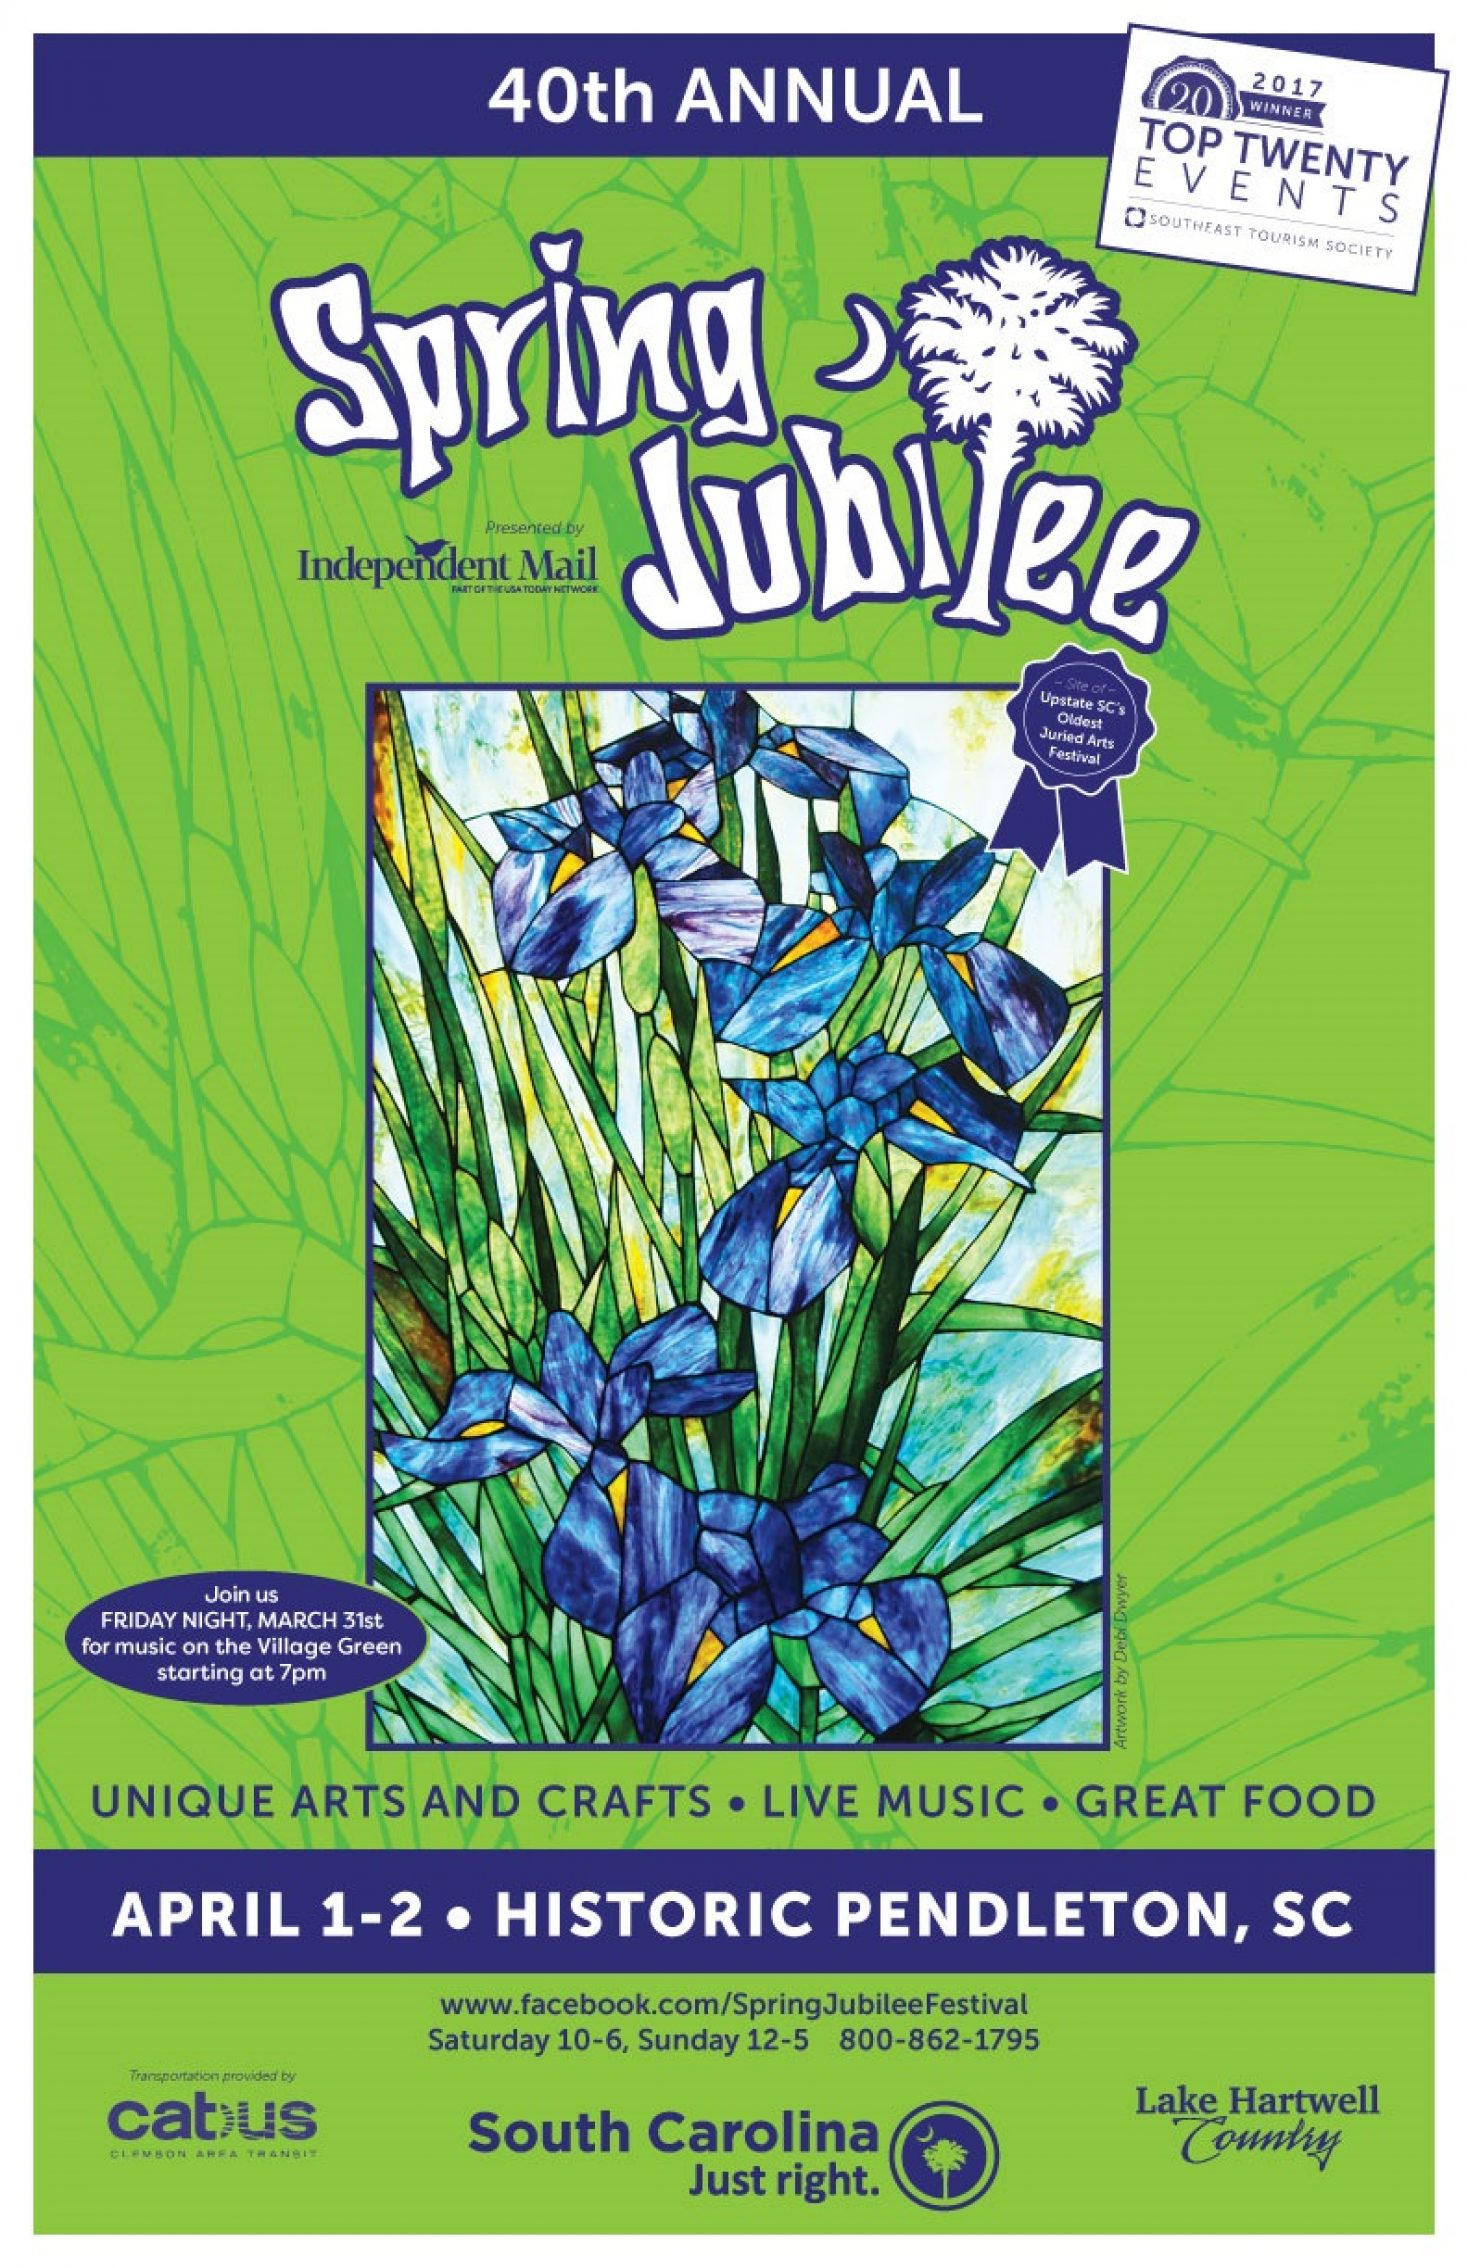 40th Annual Spring Jubilee